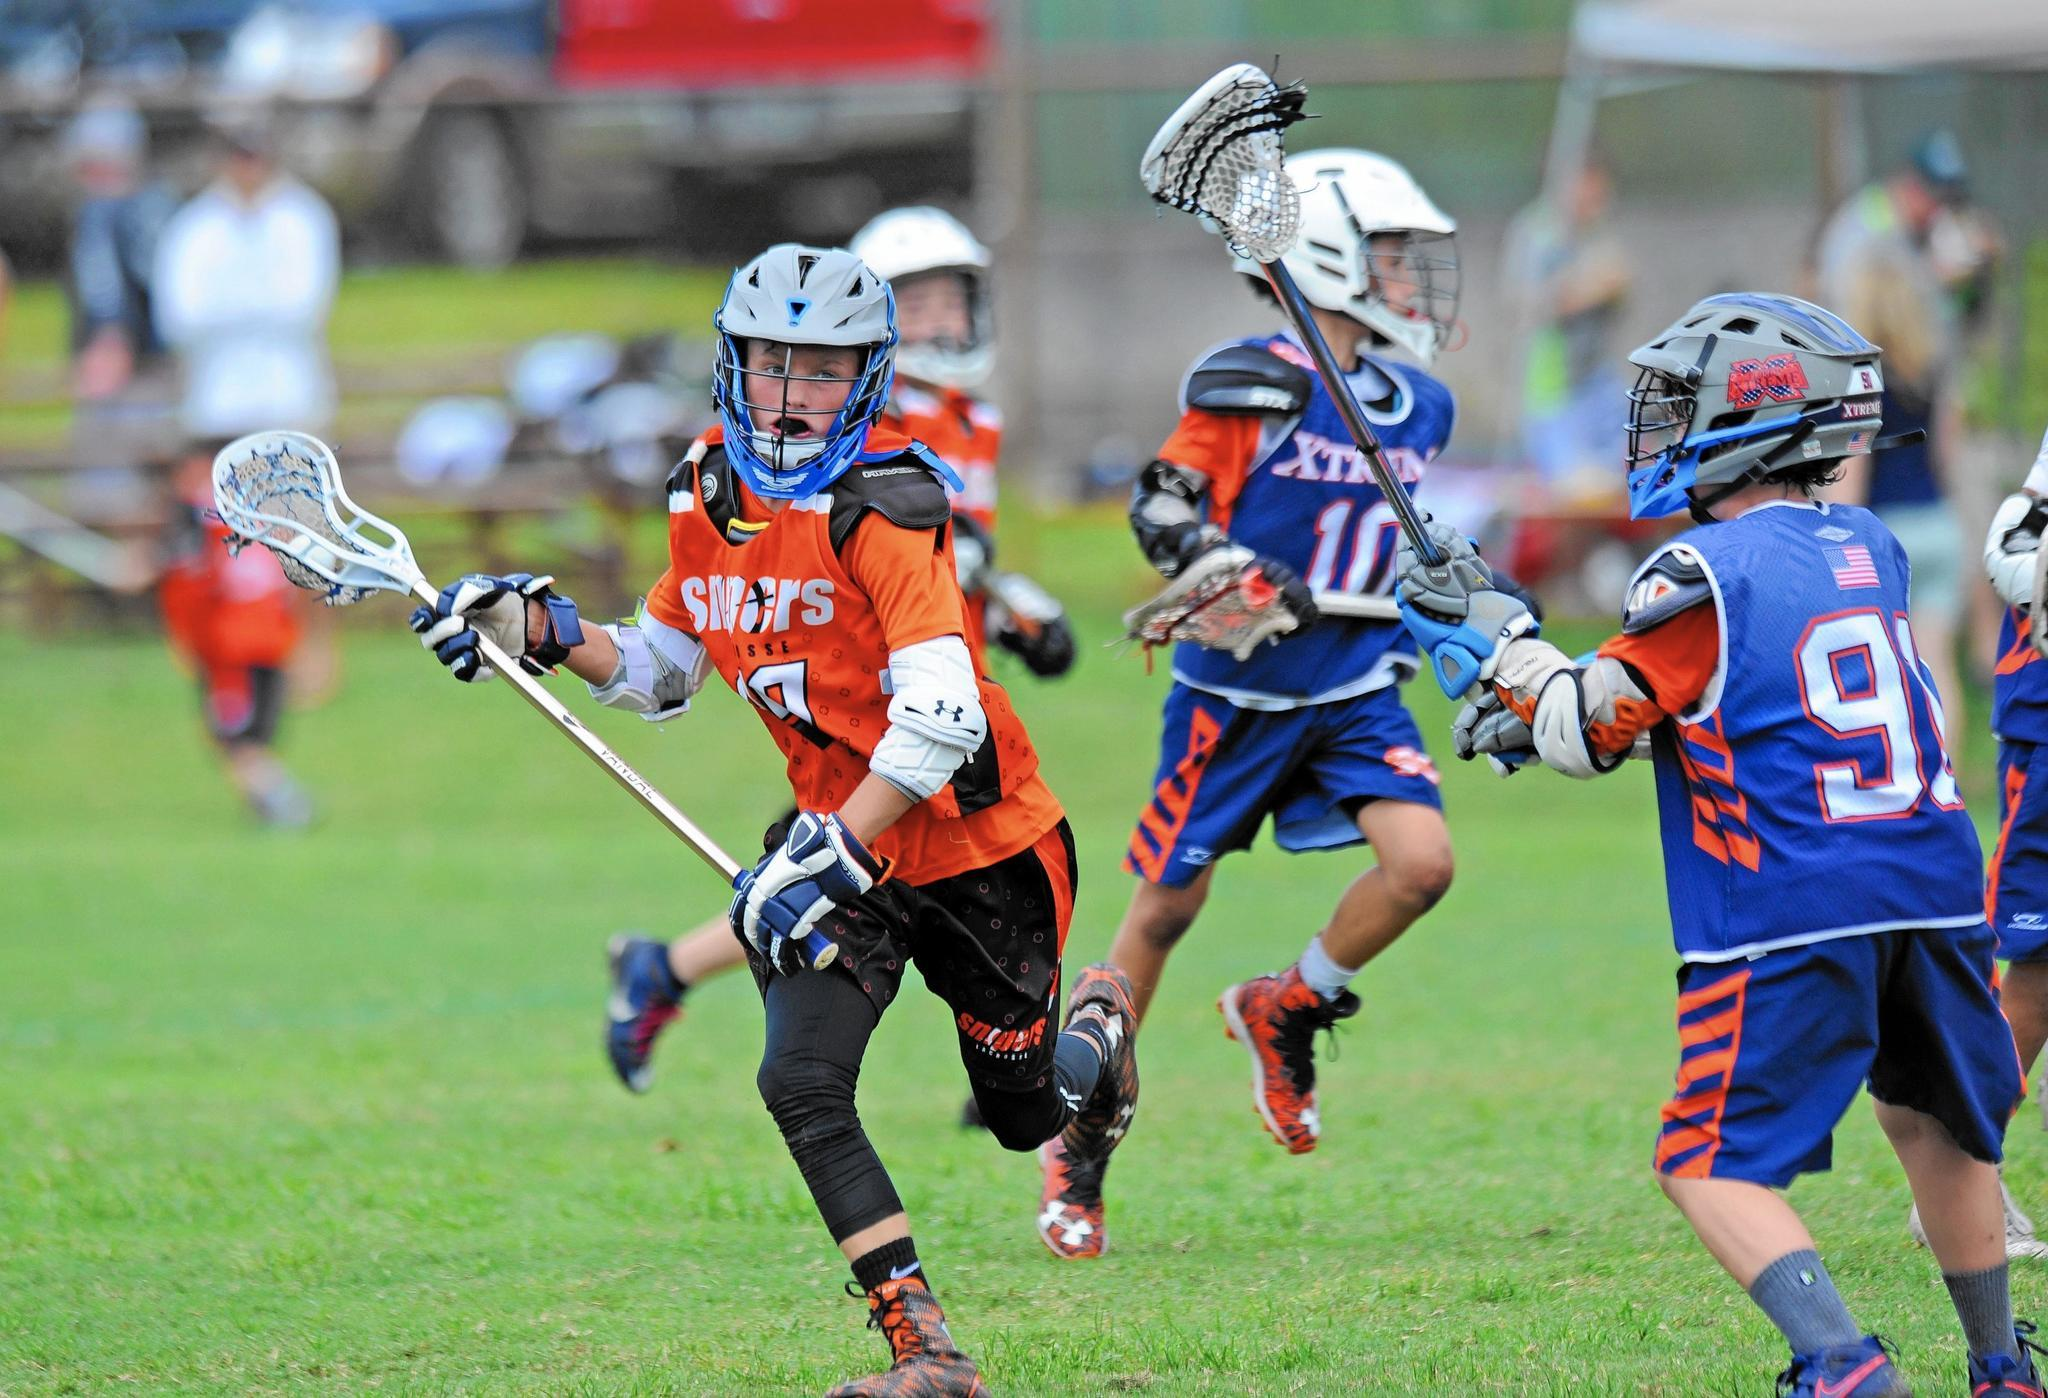 Boca youth making strong inroads into South Florida lacrosse play ...